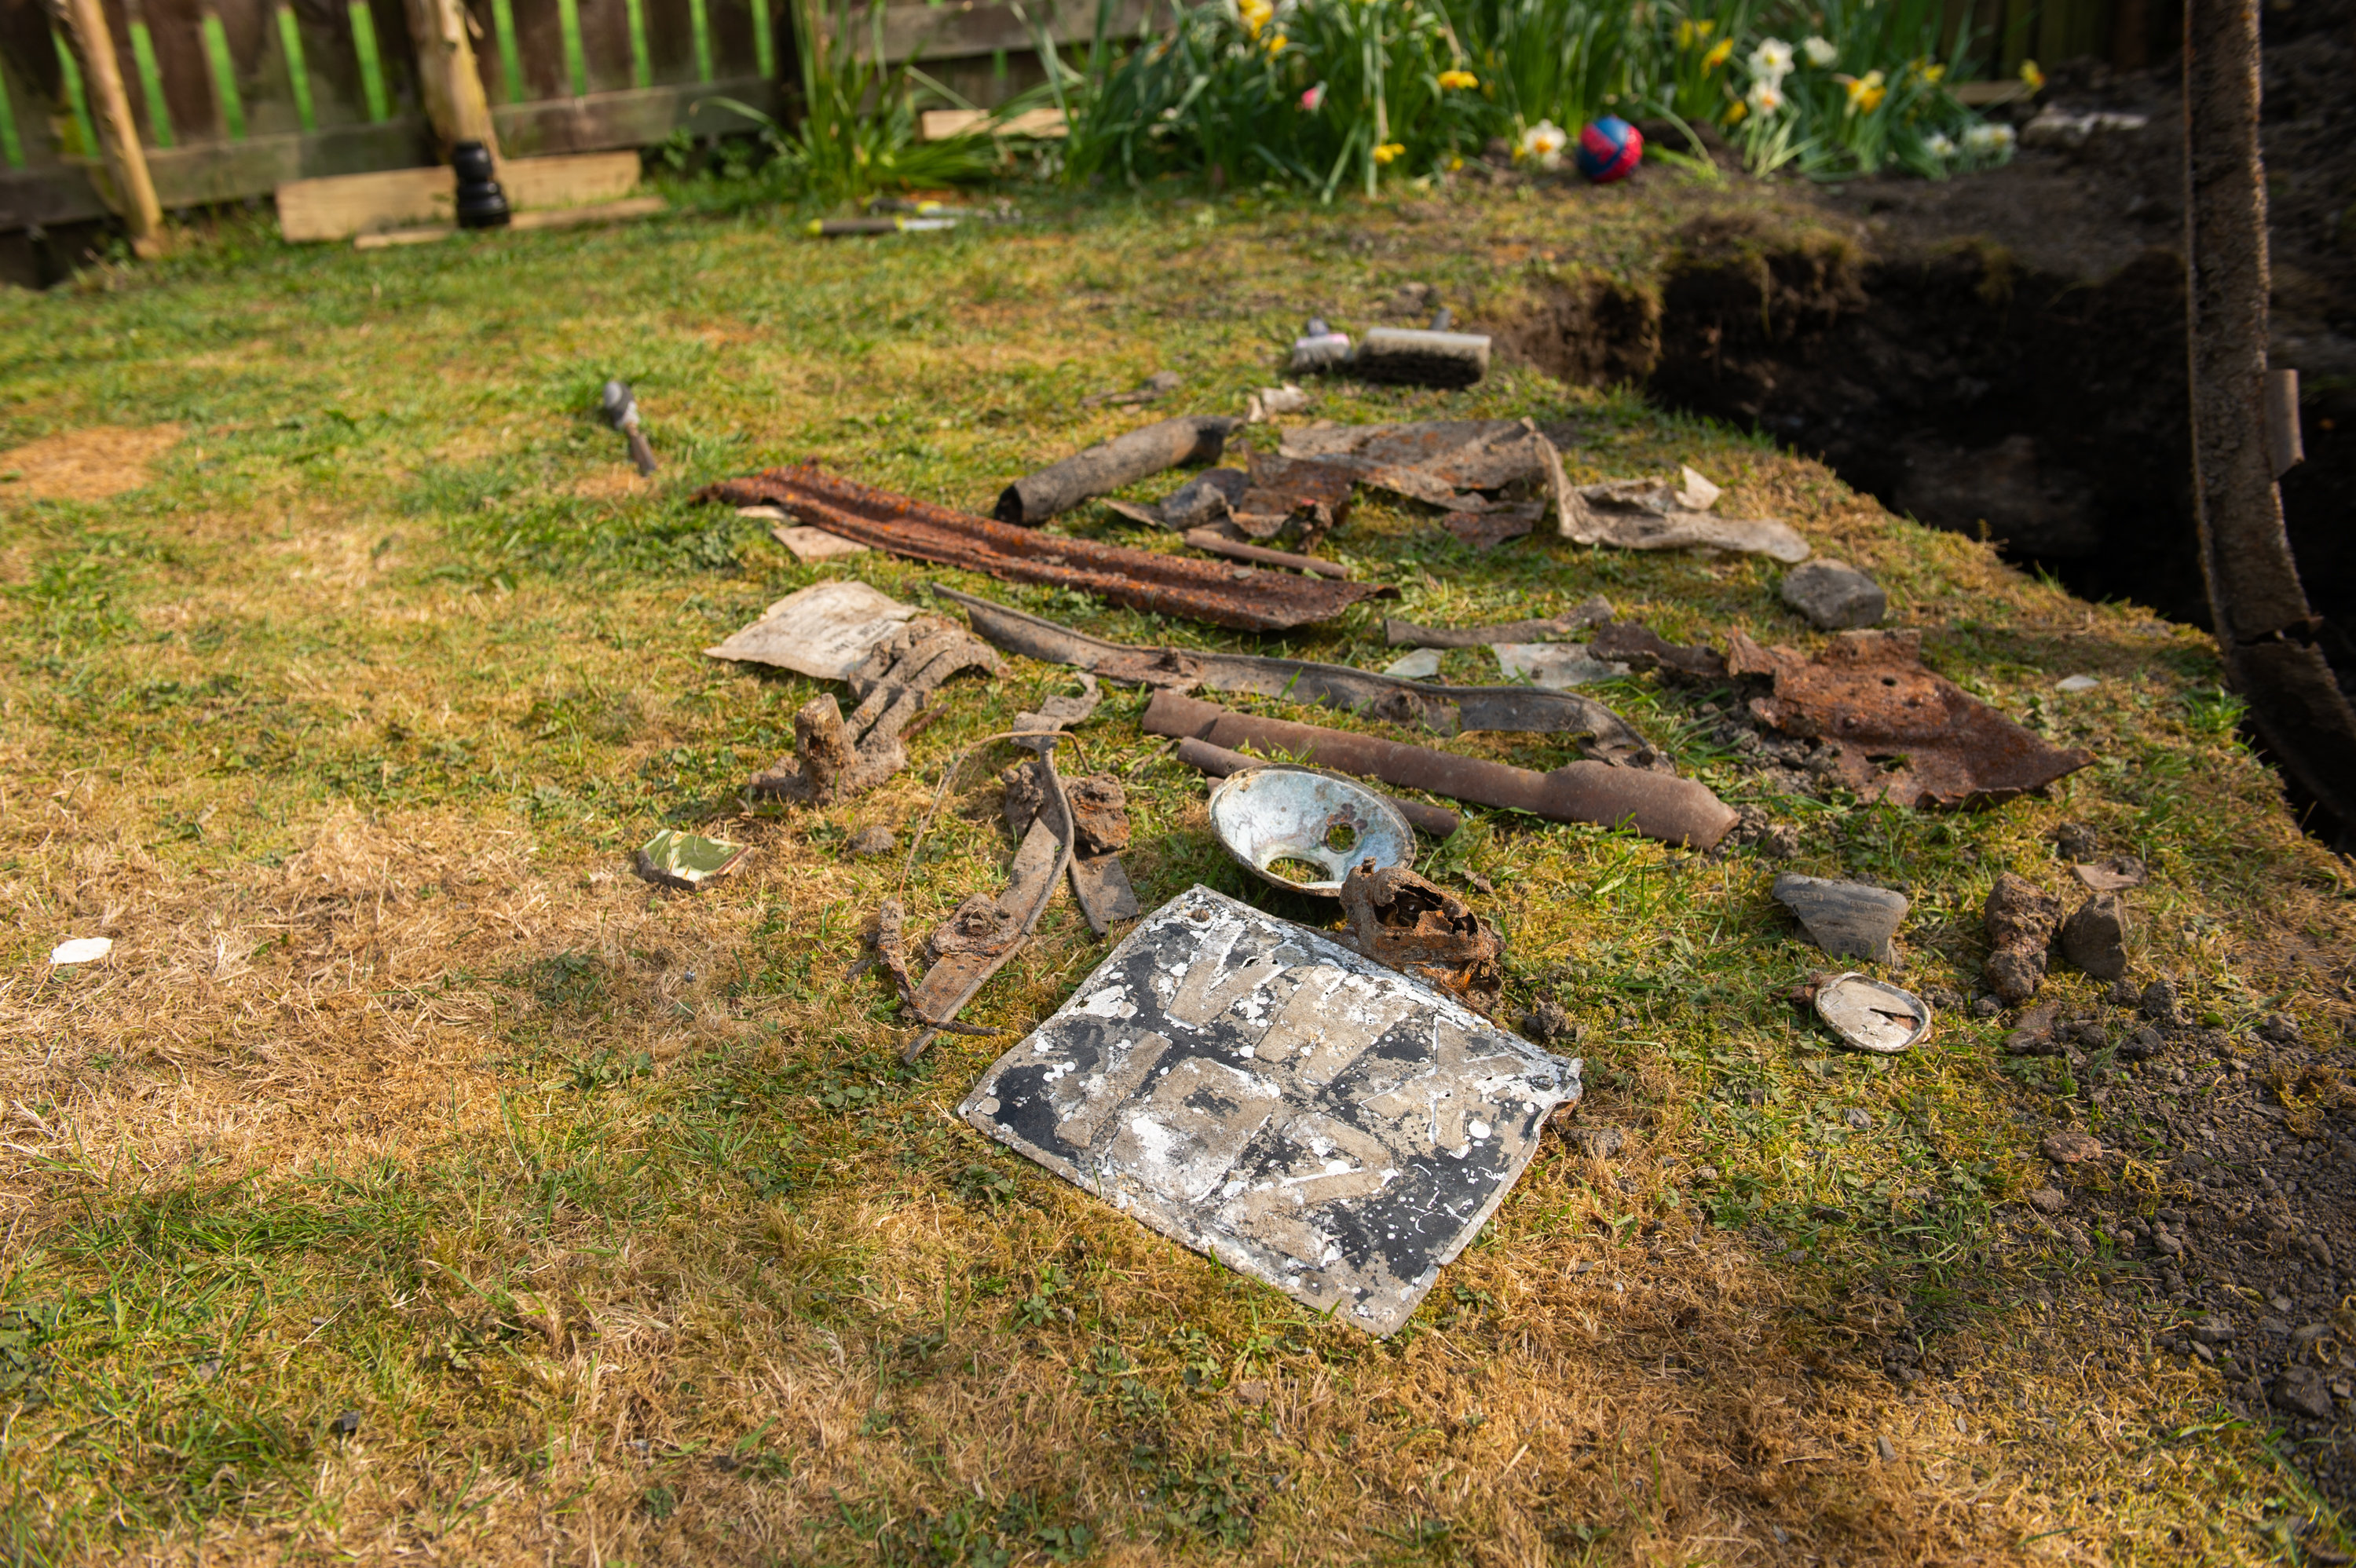 Pieces of old car found in back garden